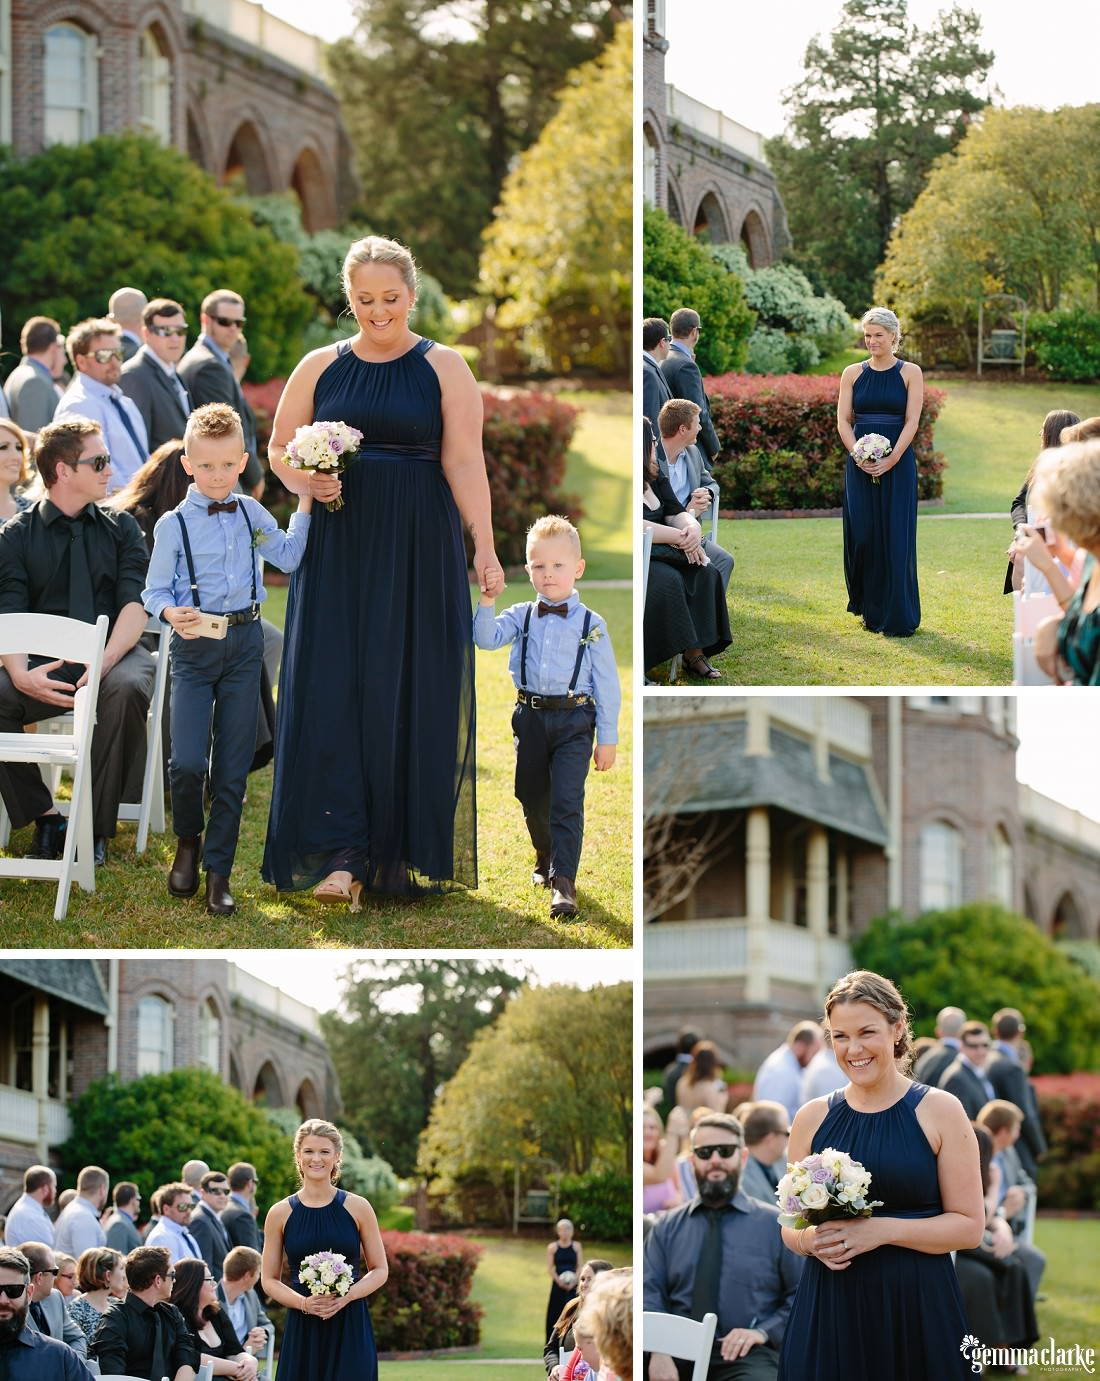 Bridesmaids and two young boys walking down the aisle of an outdoor wedding ceremony